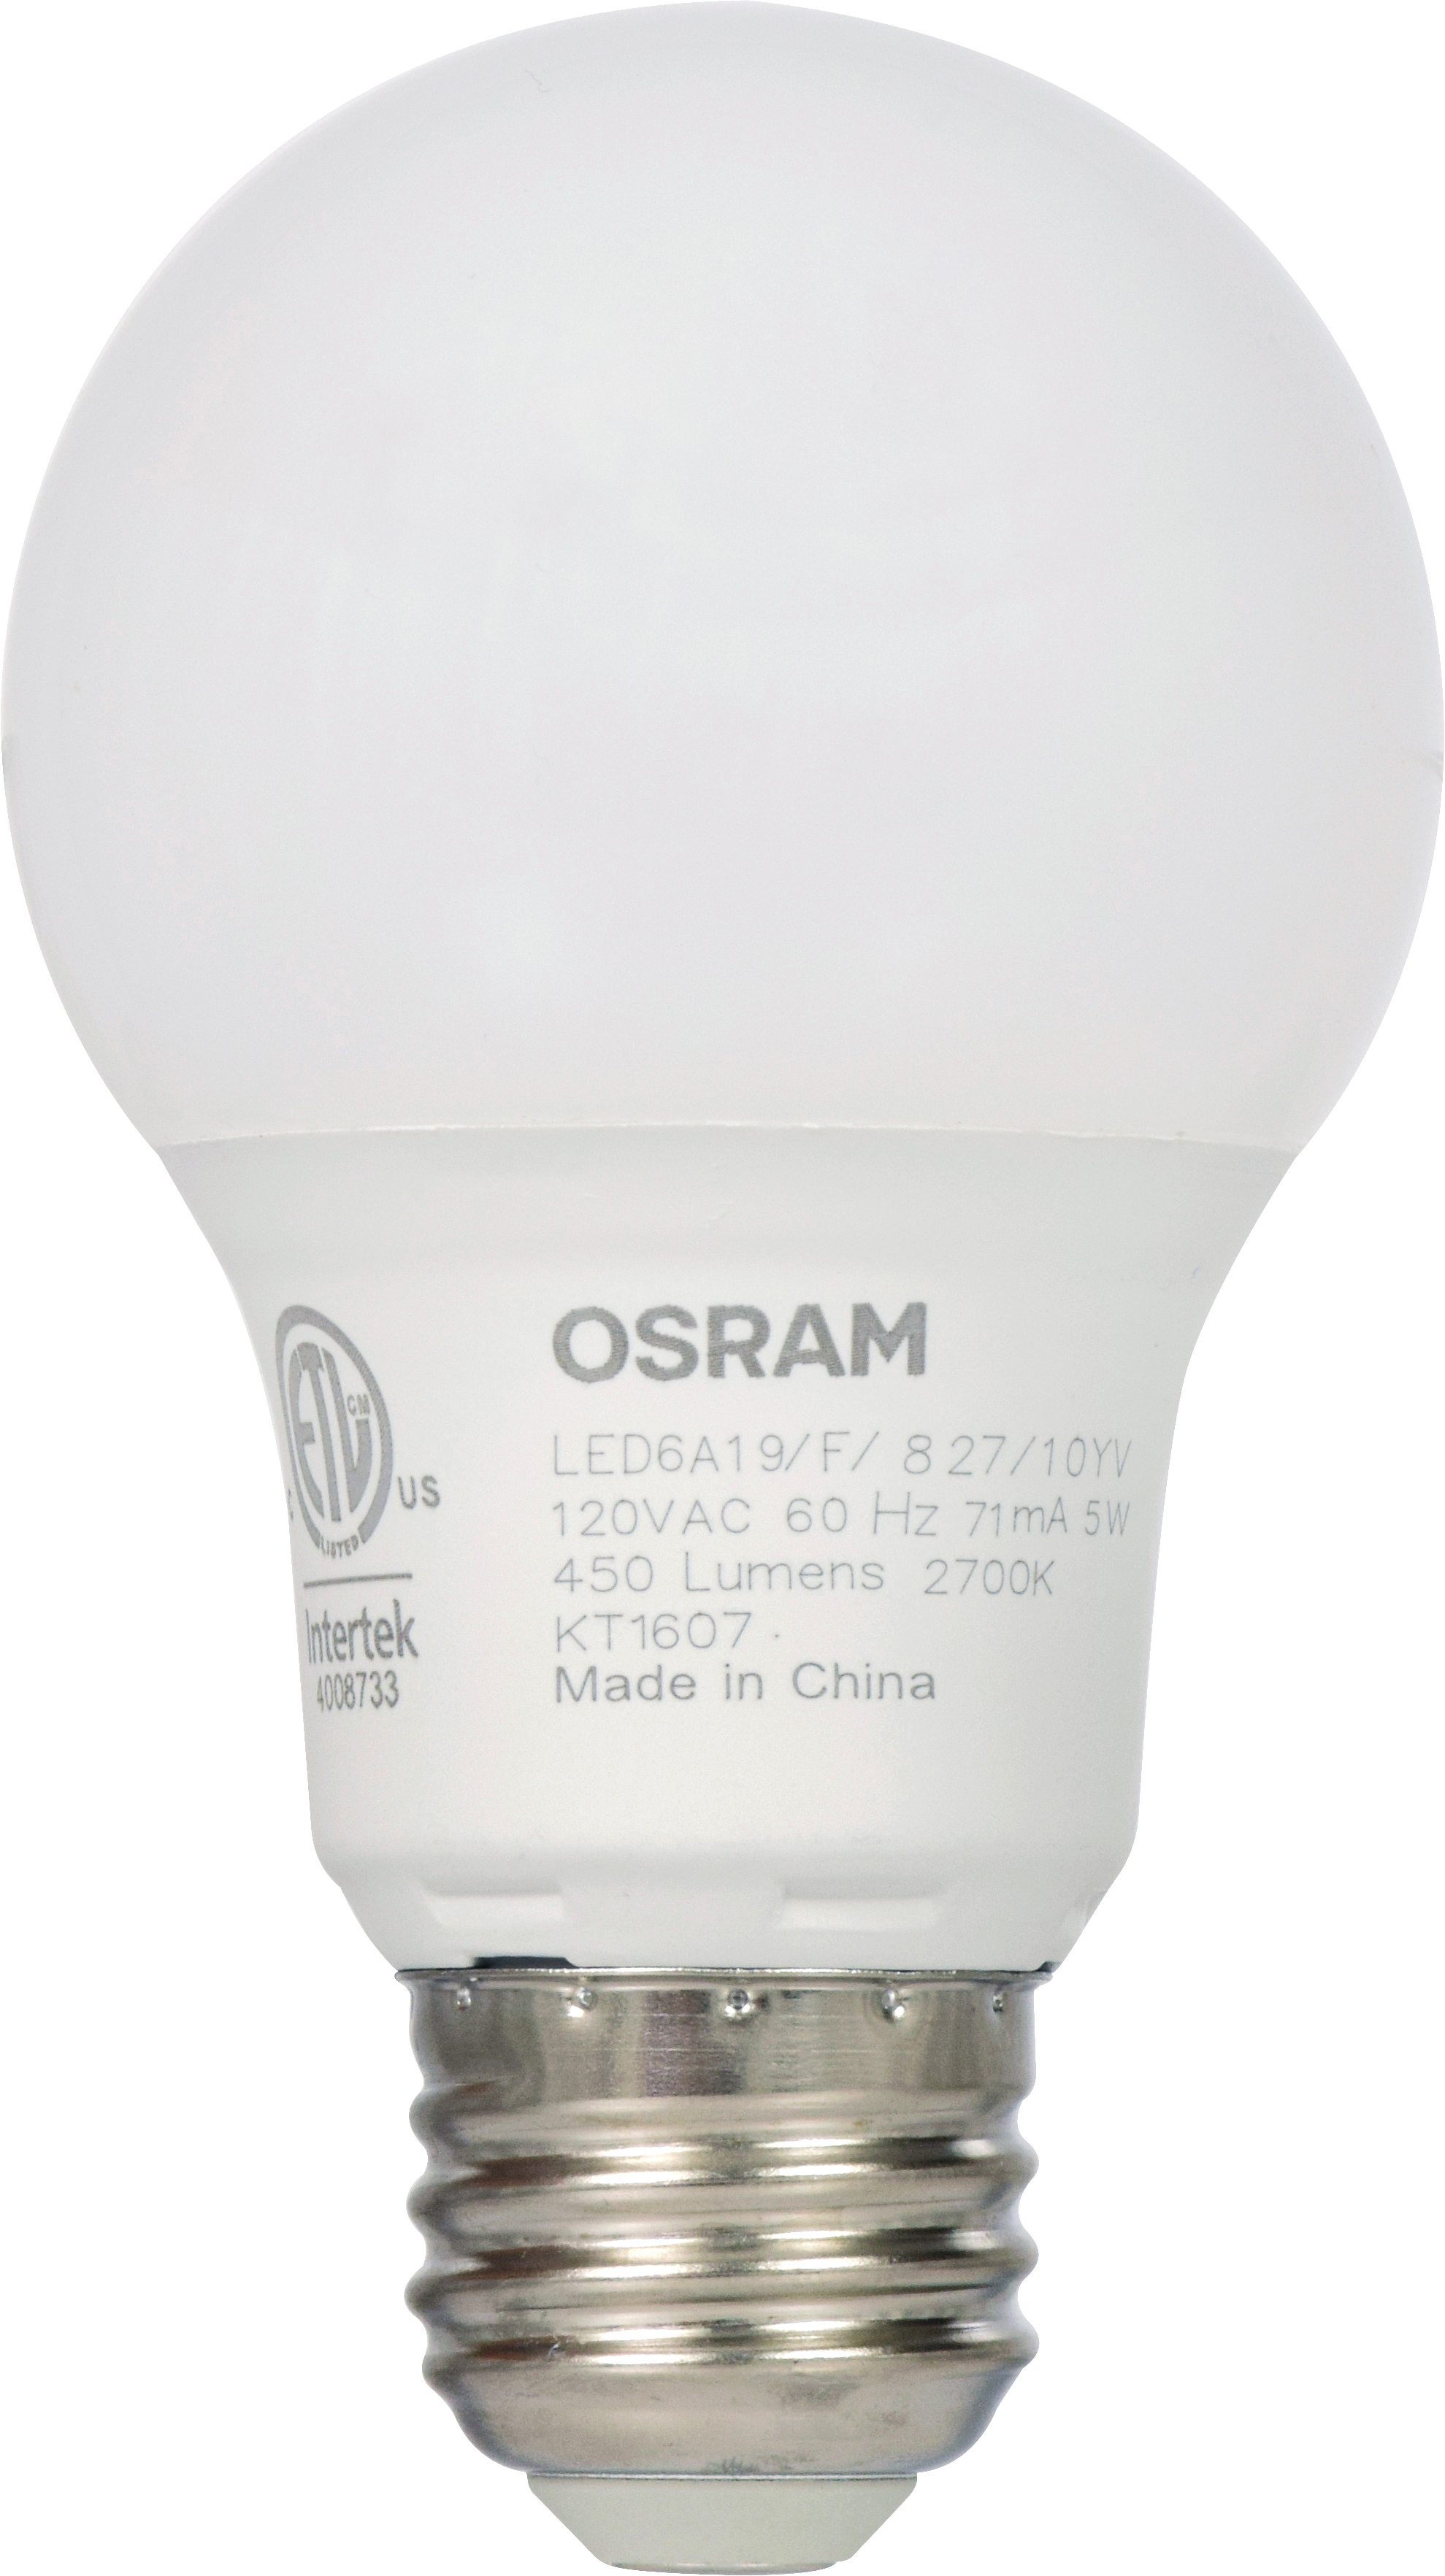 sylvania led light bulb 40w equivalent a19 soft white 2700k 2 pack